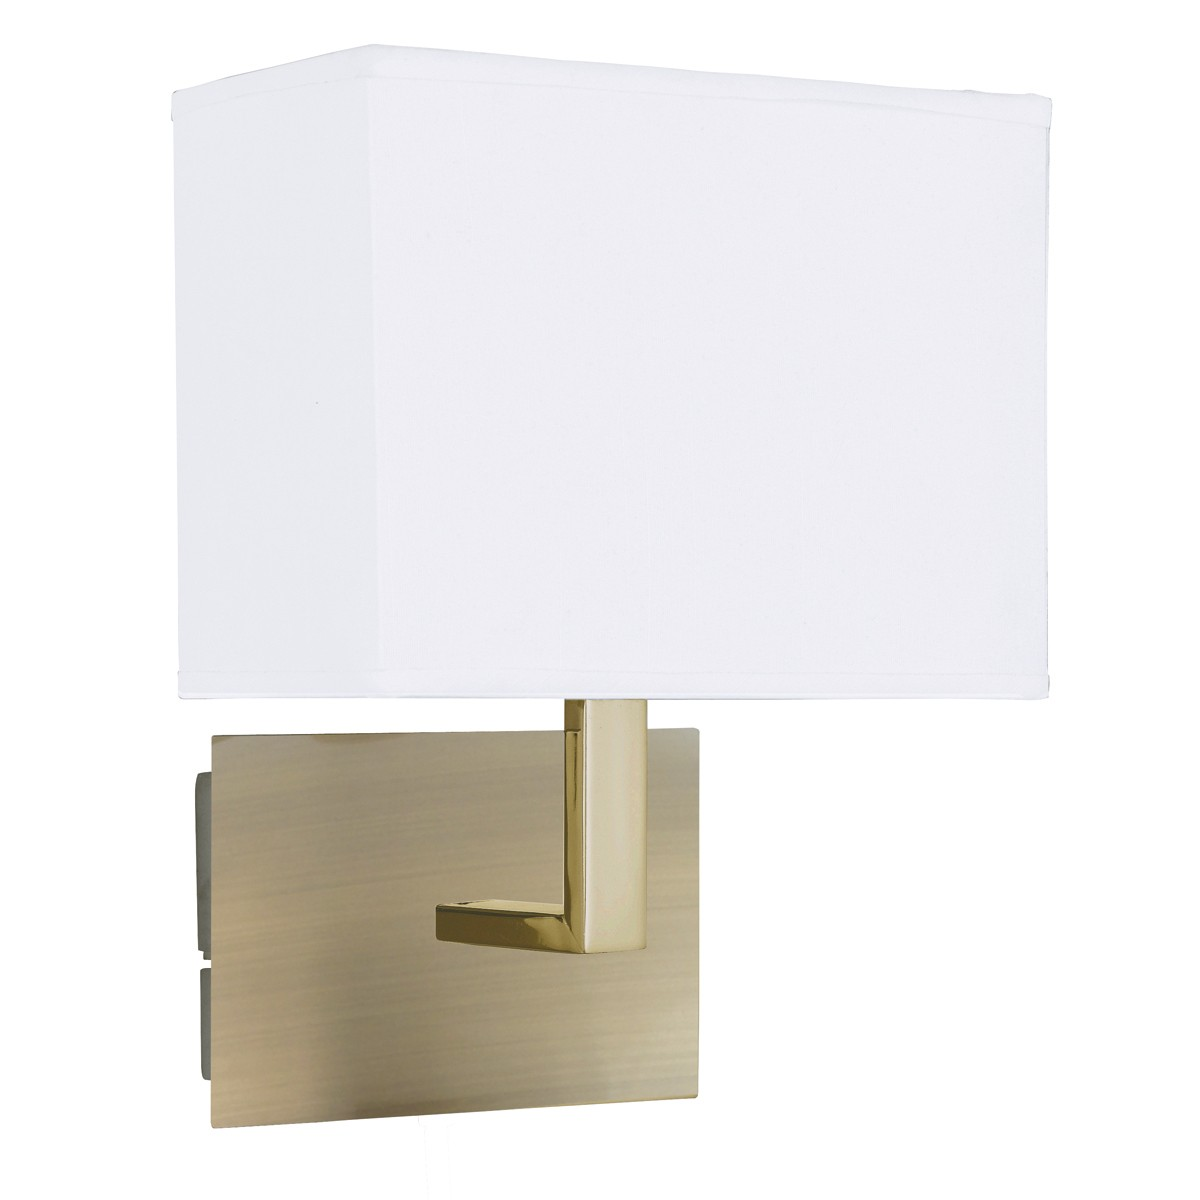 Brass Wall Lights With Shades : ANTIQUE BRASS WALL LIGHT WITH WHITE RECTANGULAR FABRIC SHADE 5519AB Stanways Stoves and Lights